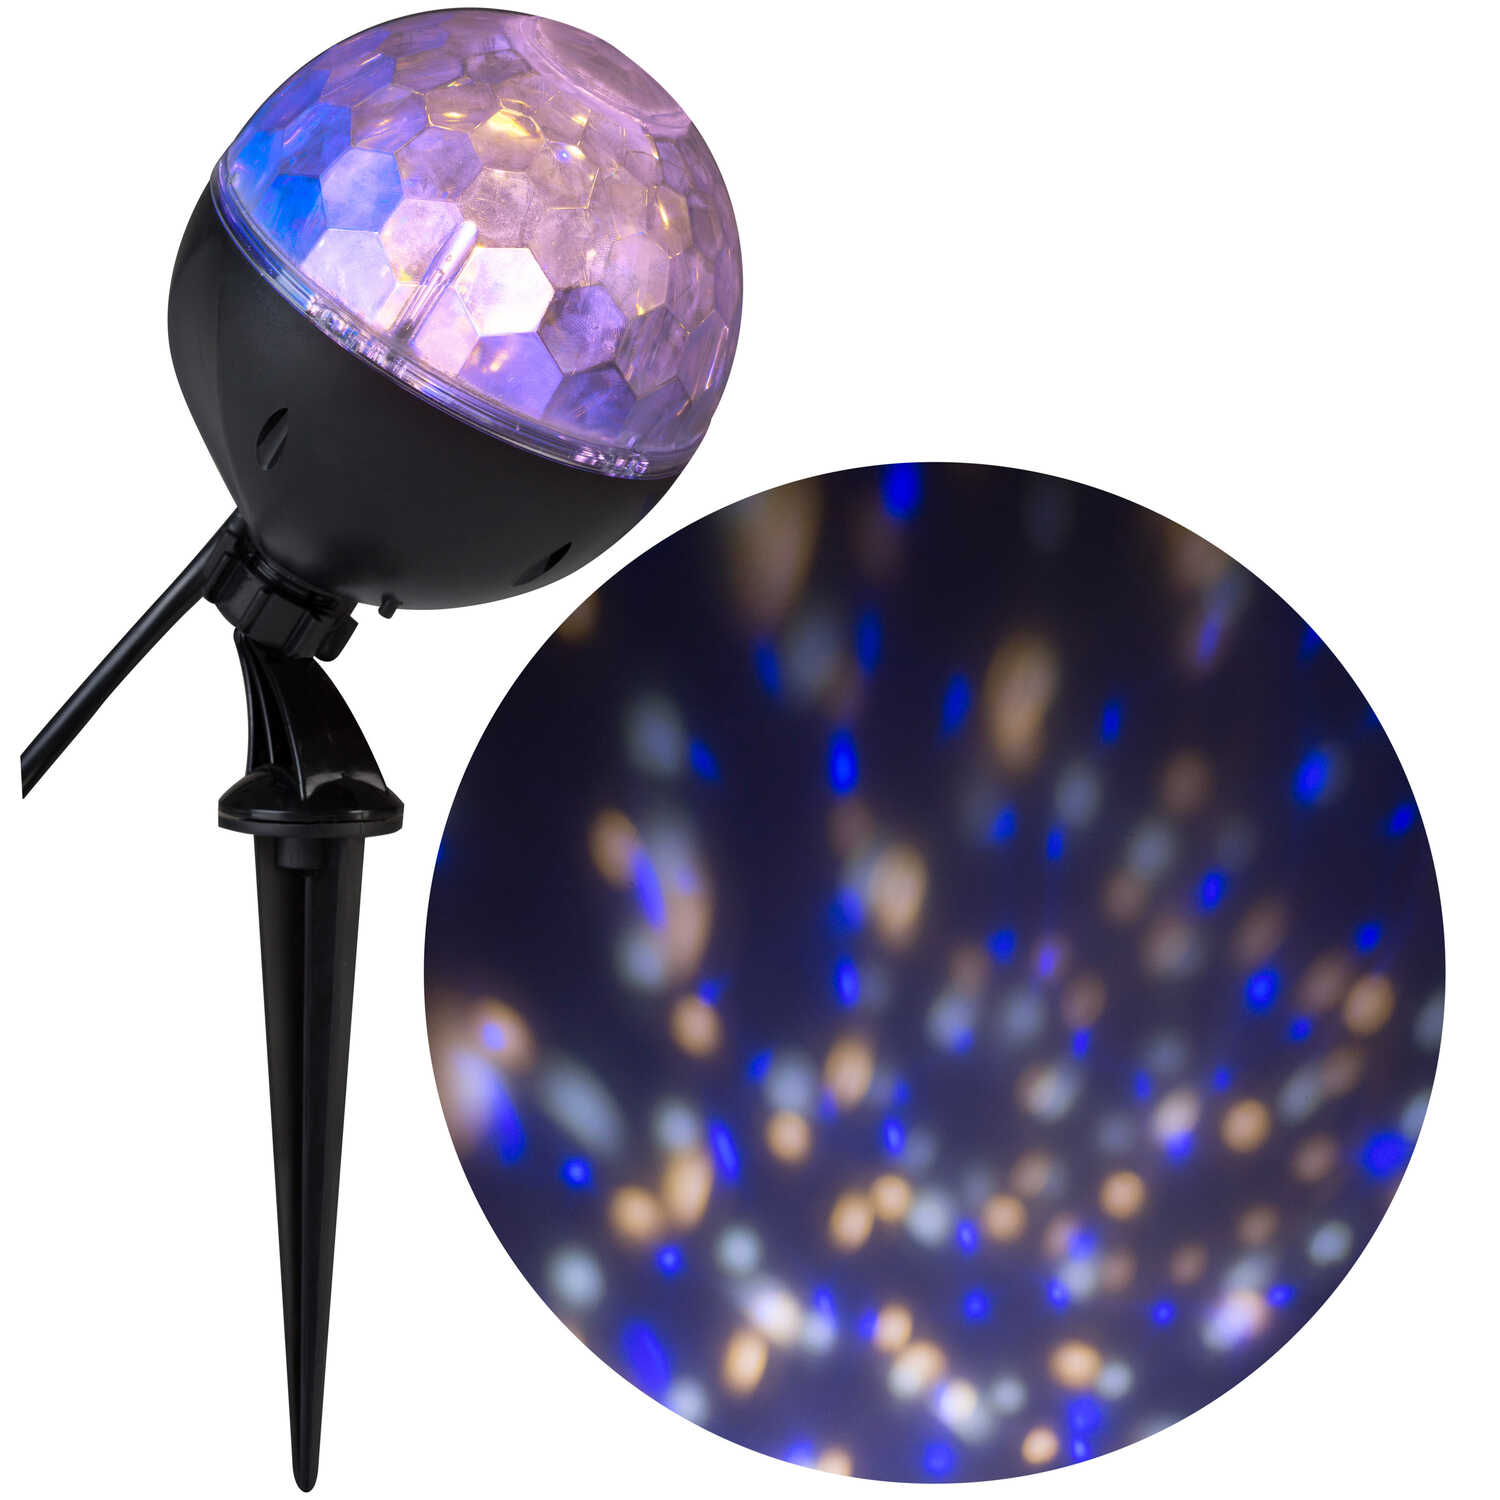 Gemmy  Confetti  LED Projector  Blue  1 pk Plastic